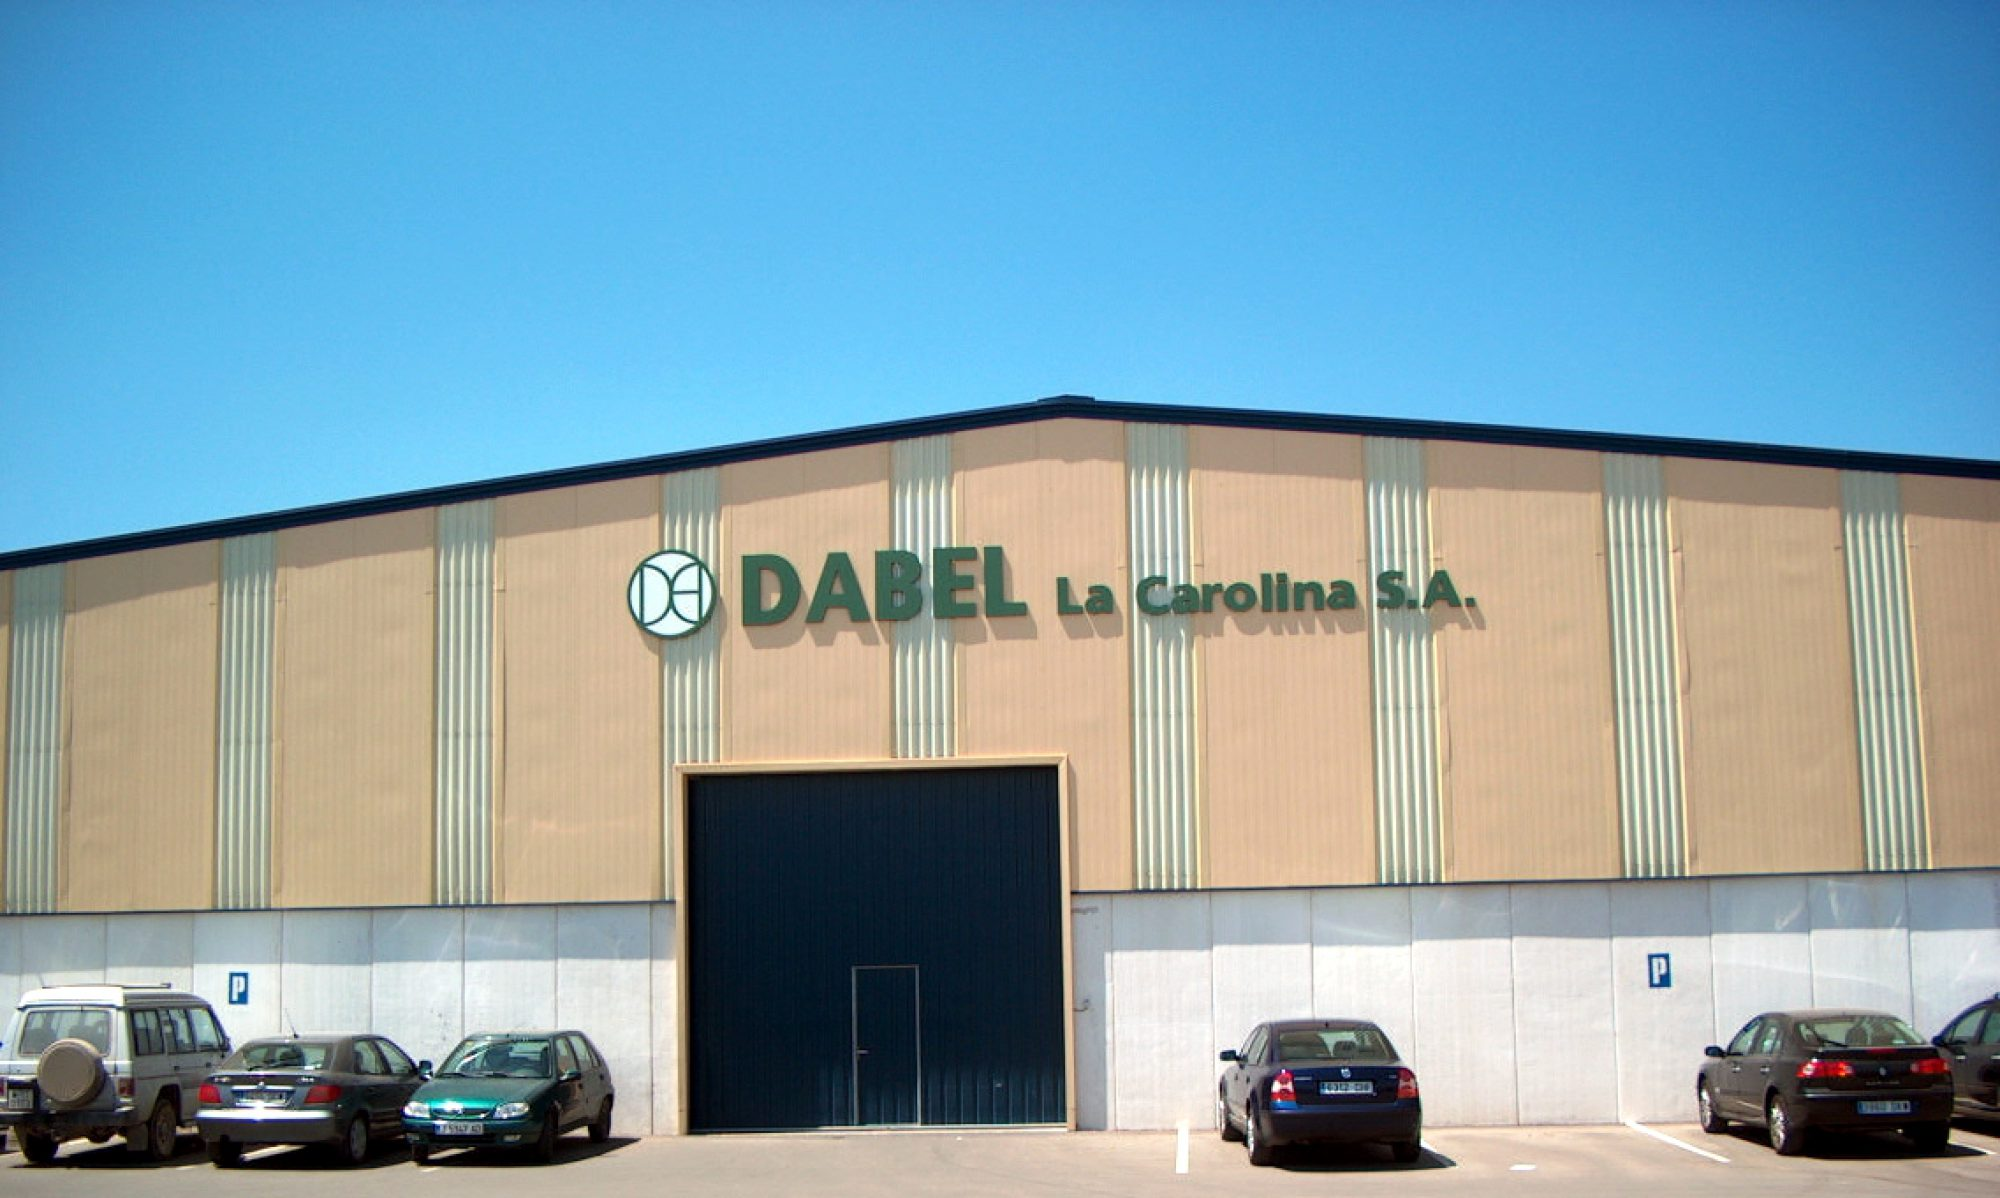 Dabel La Carolina, s.a.